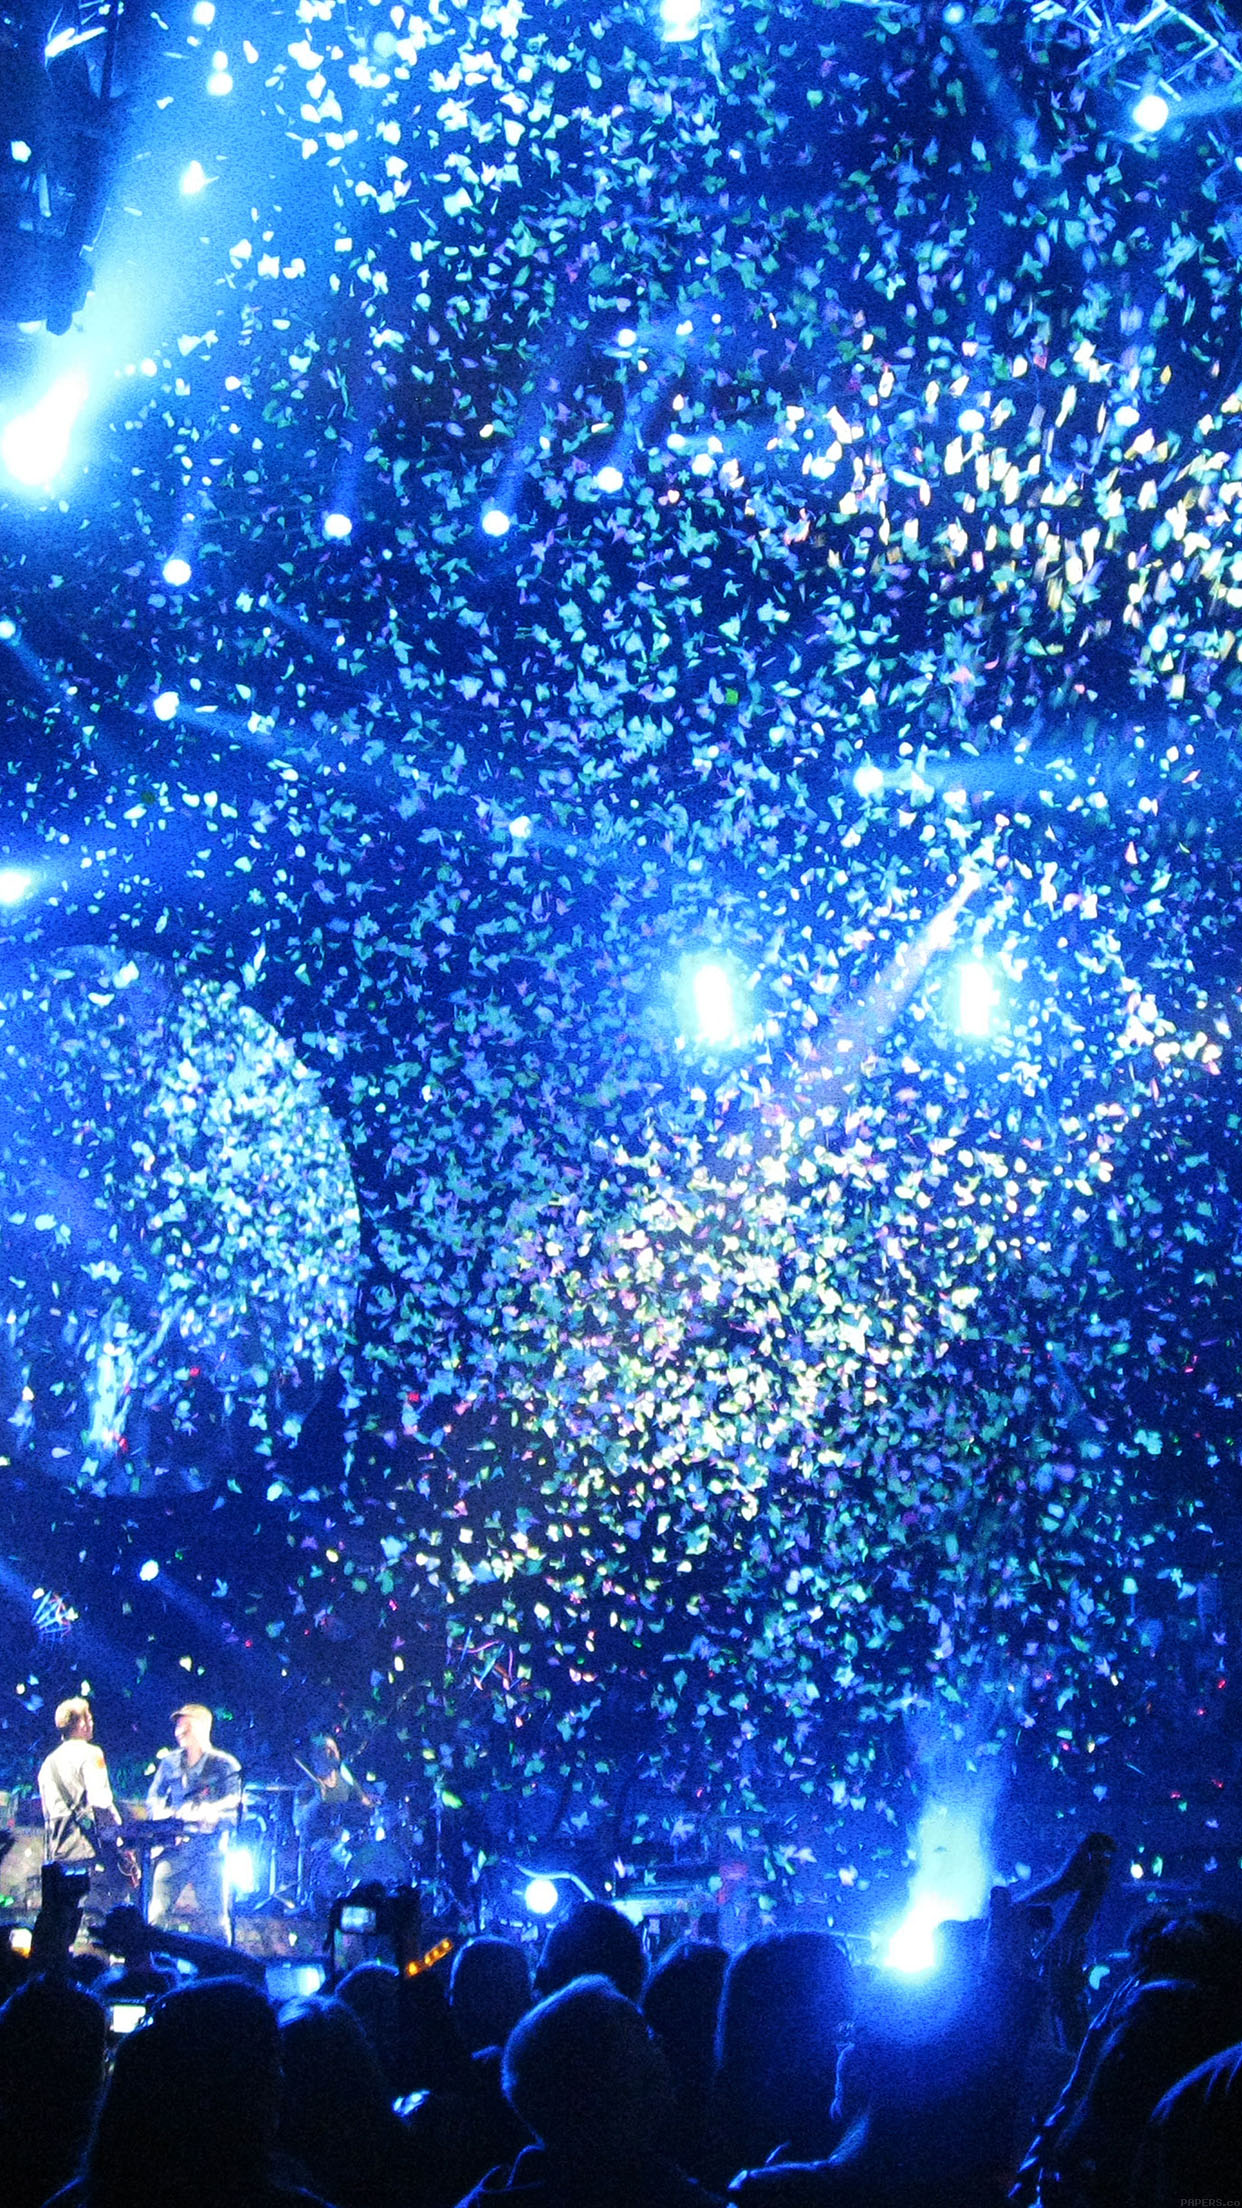 Xmas Wallpaper Iphone Ab51 Wallpaper Coldplay Concert Blue Papers Co